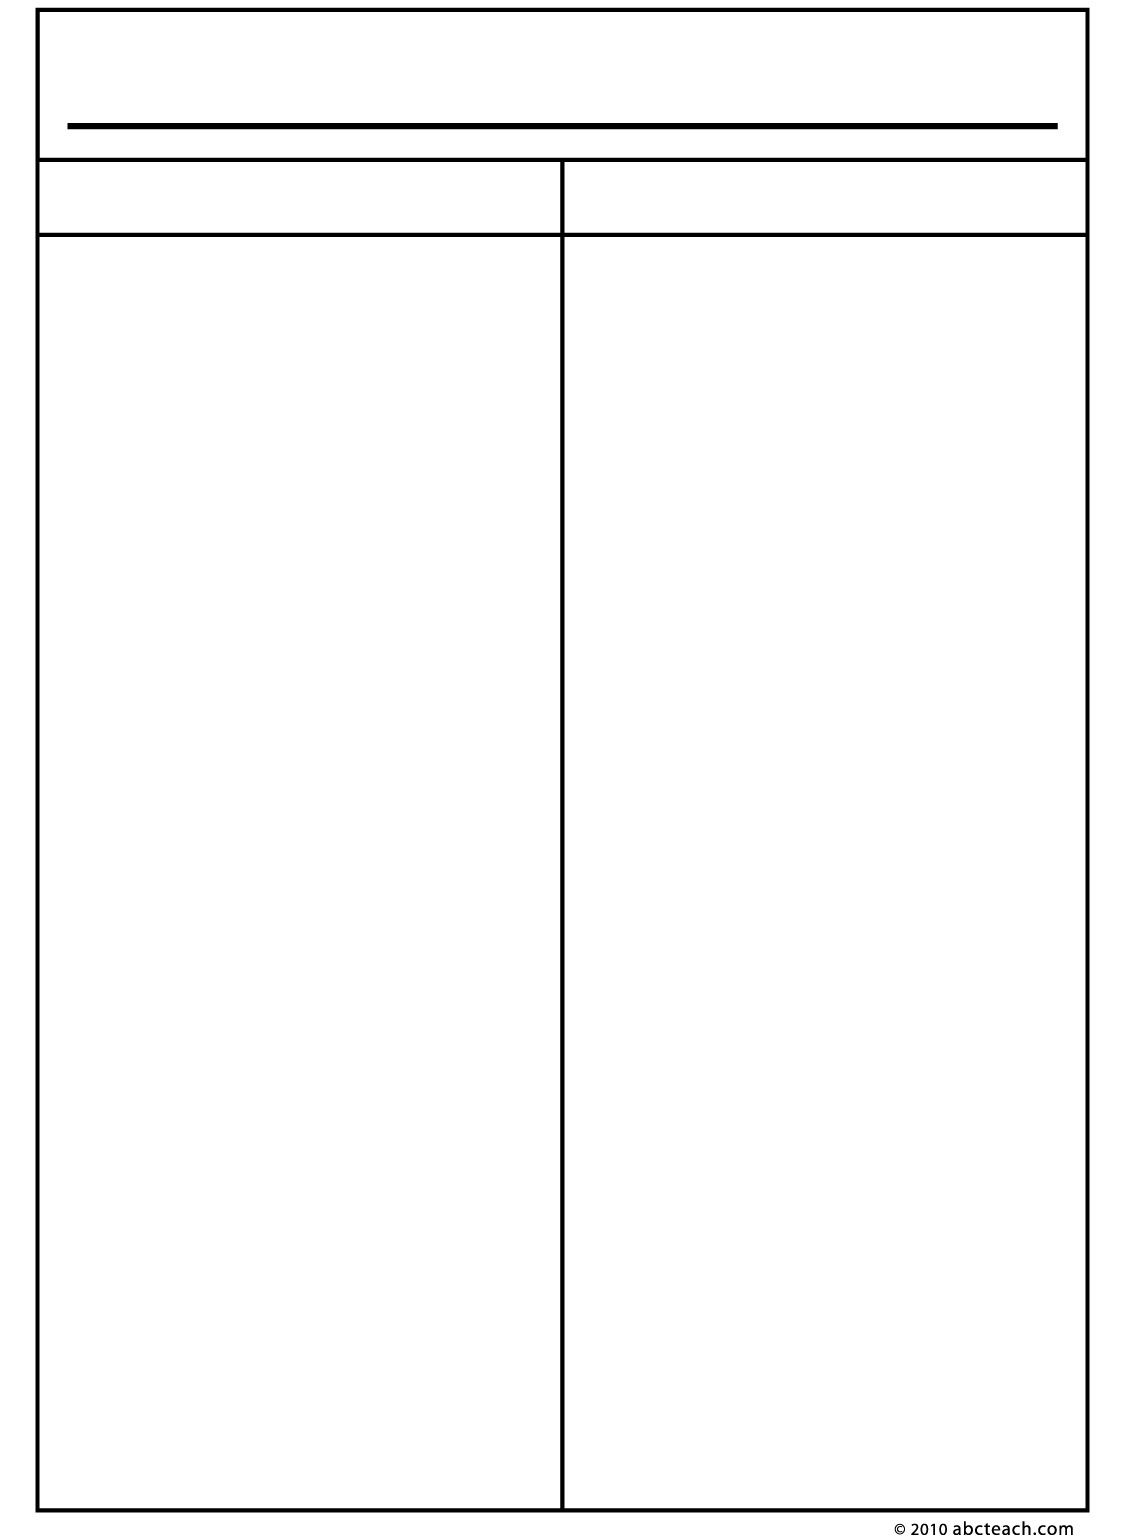 Blank two column table chart - Graphic Organizers Printable Graphic Organizers